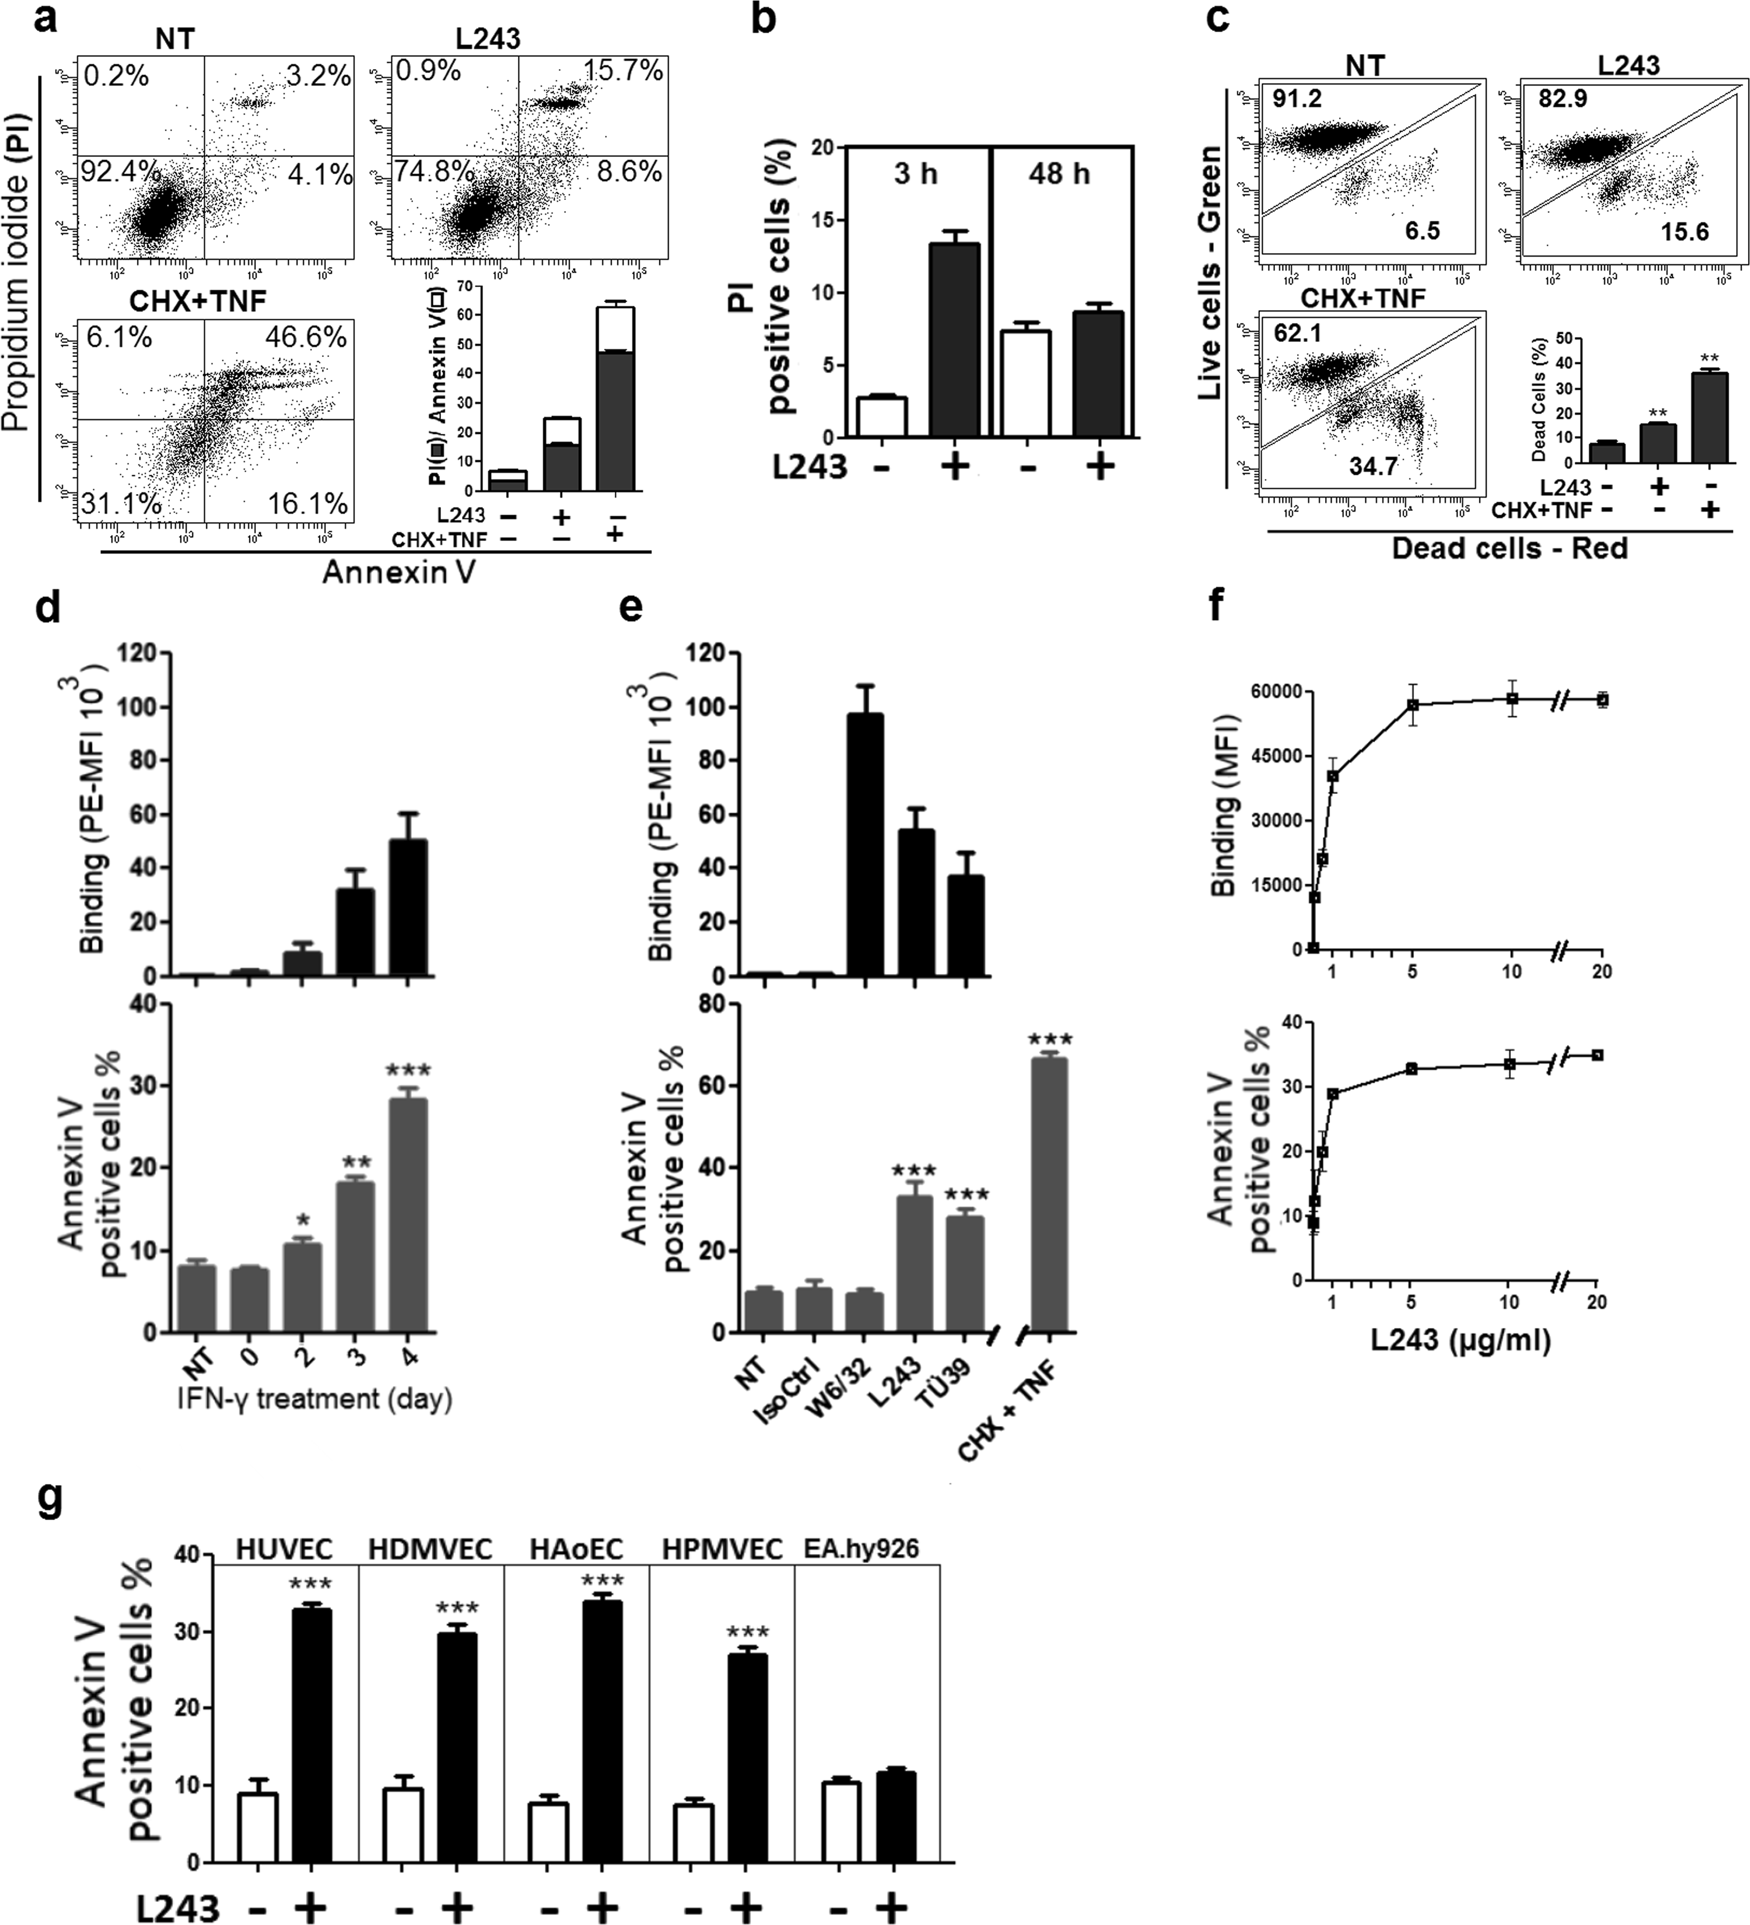 HLA class II antibodies induce necrotic cell death in human